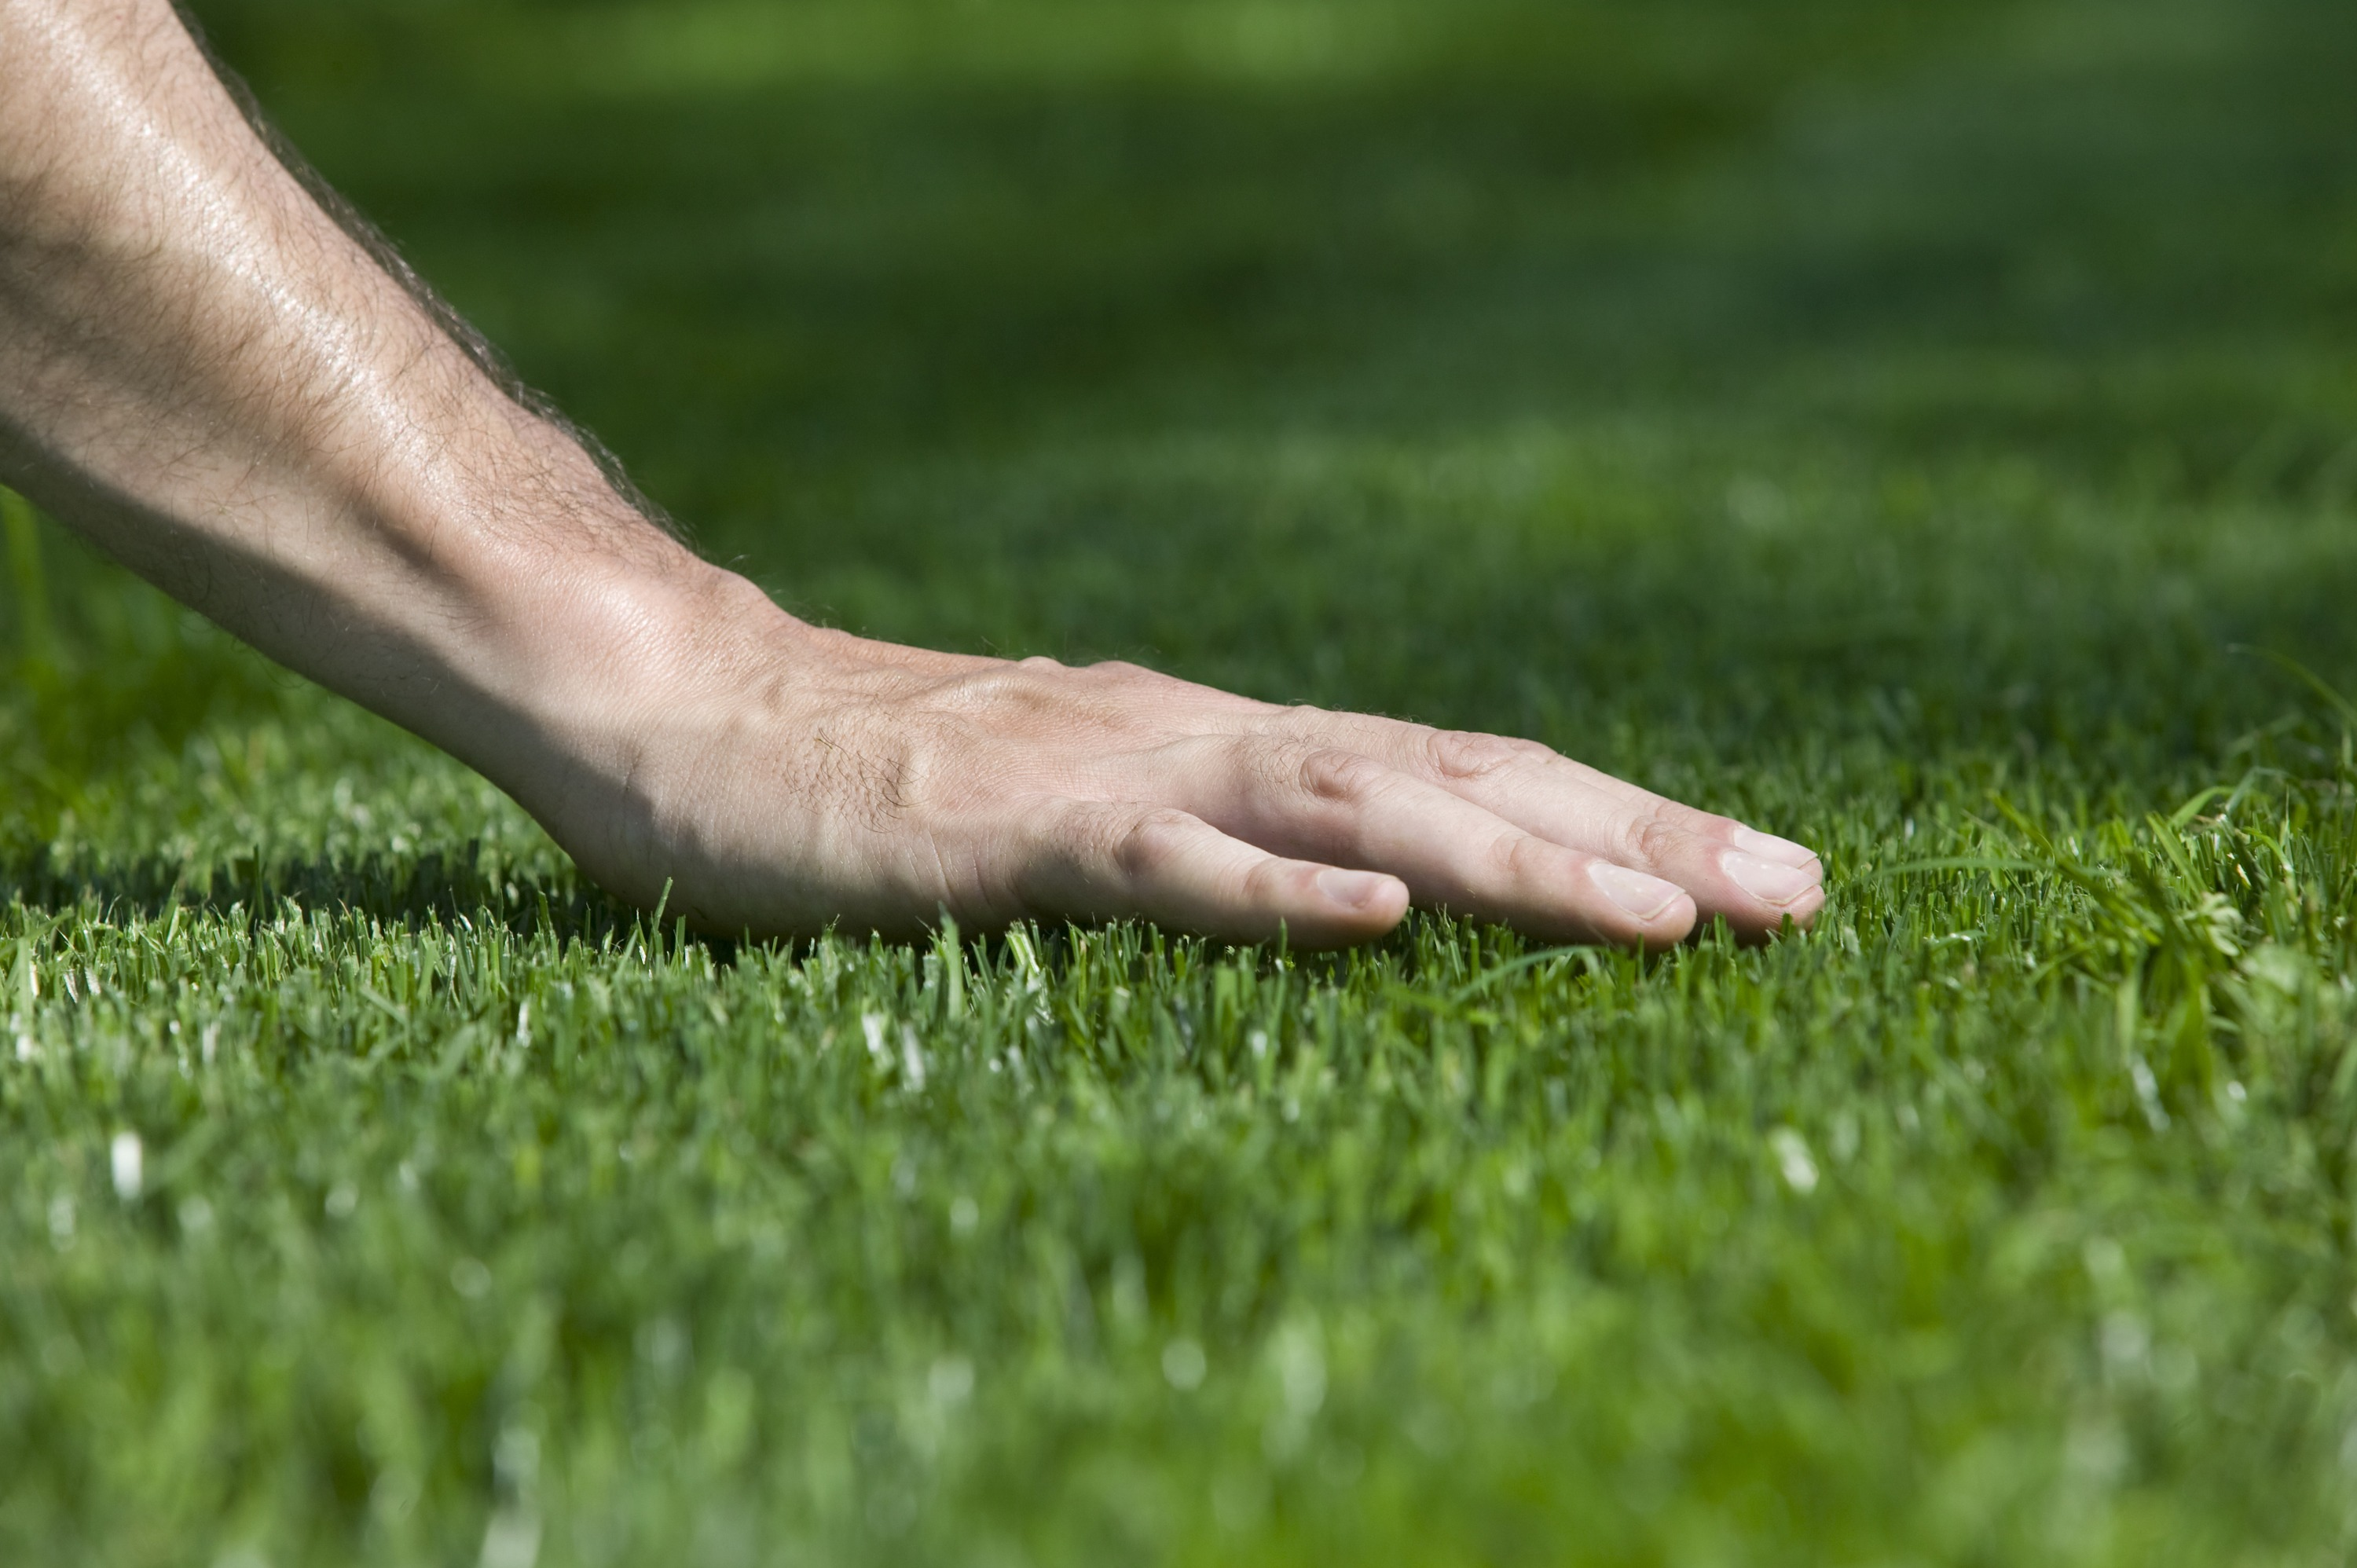 A hand touching the freshly cut grass